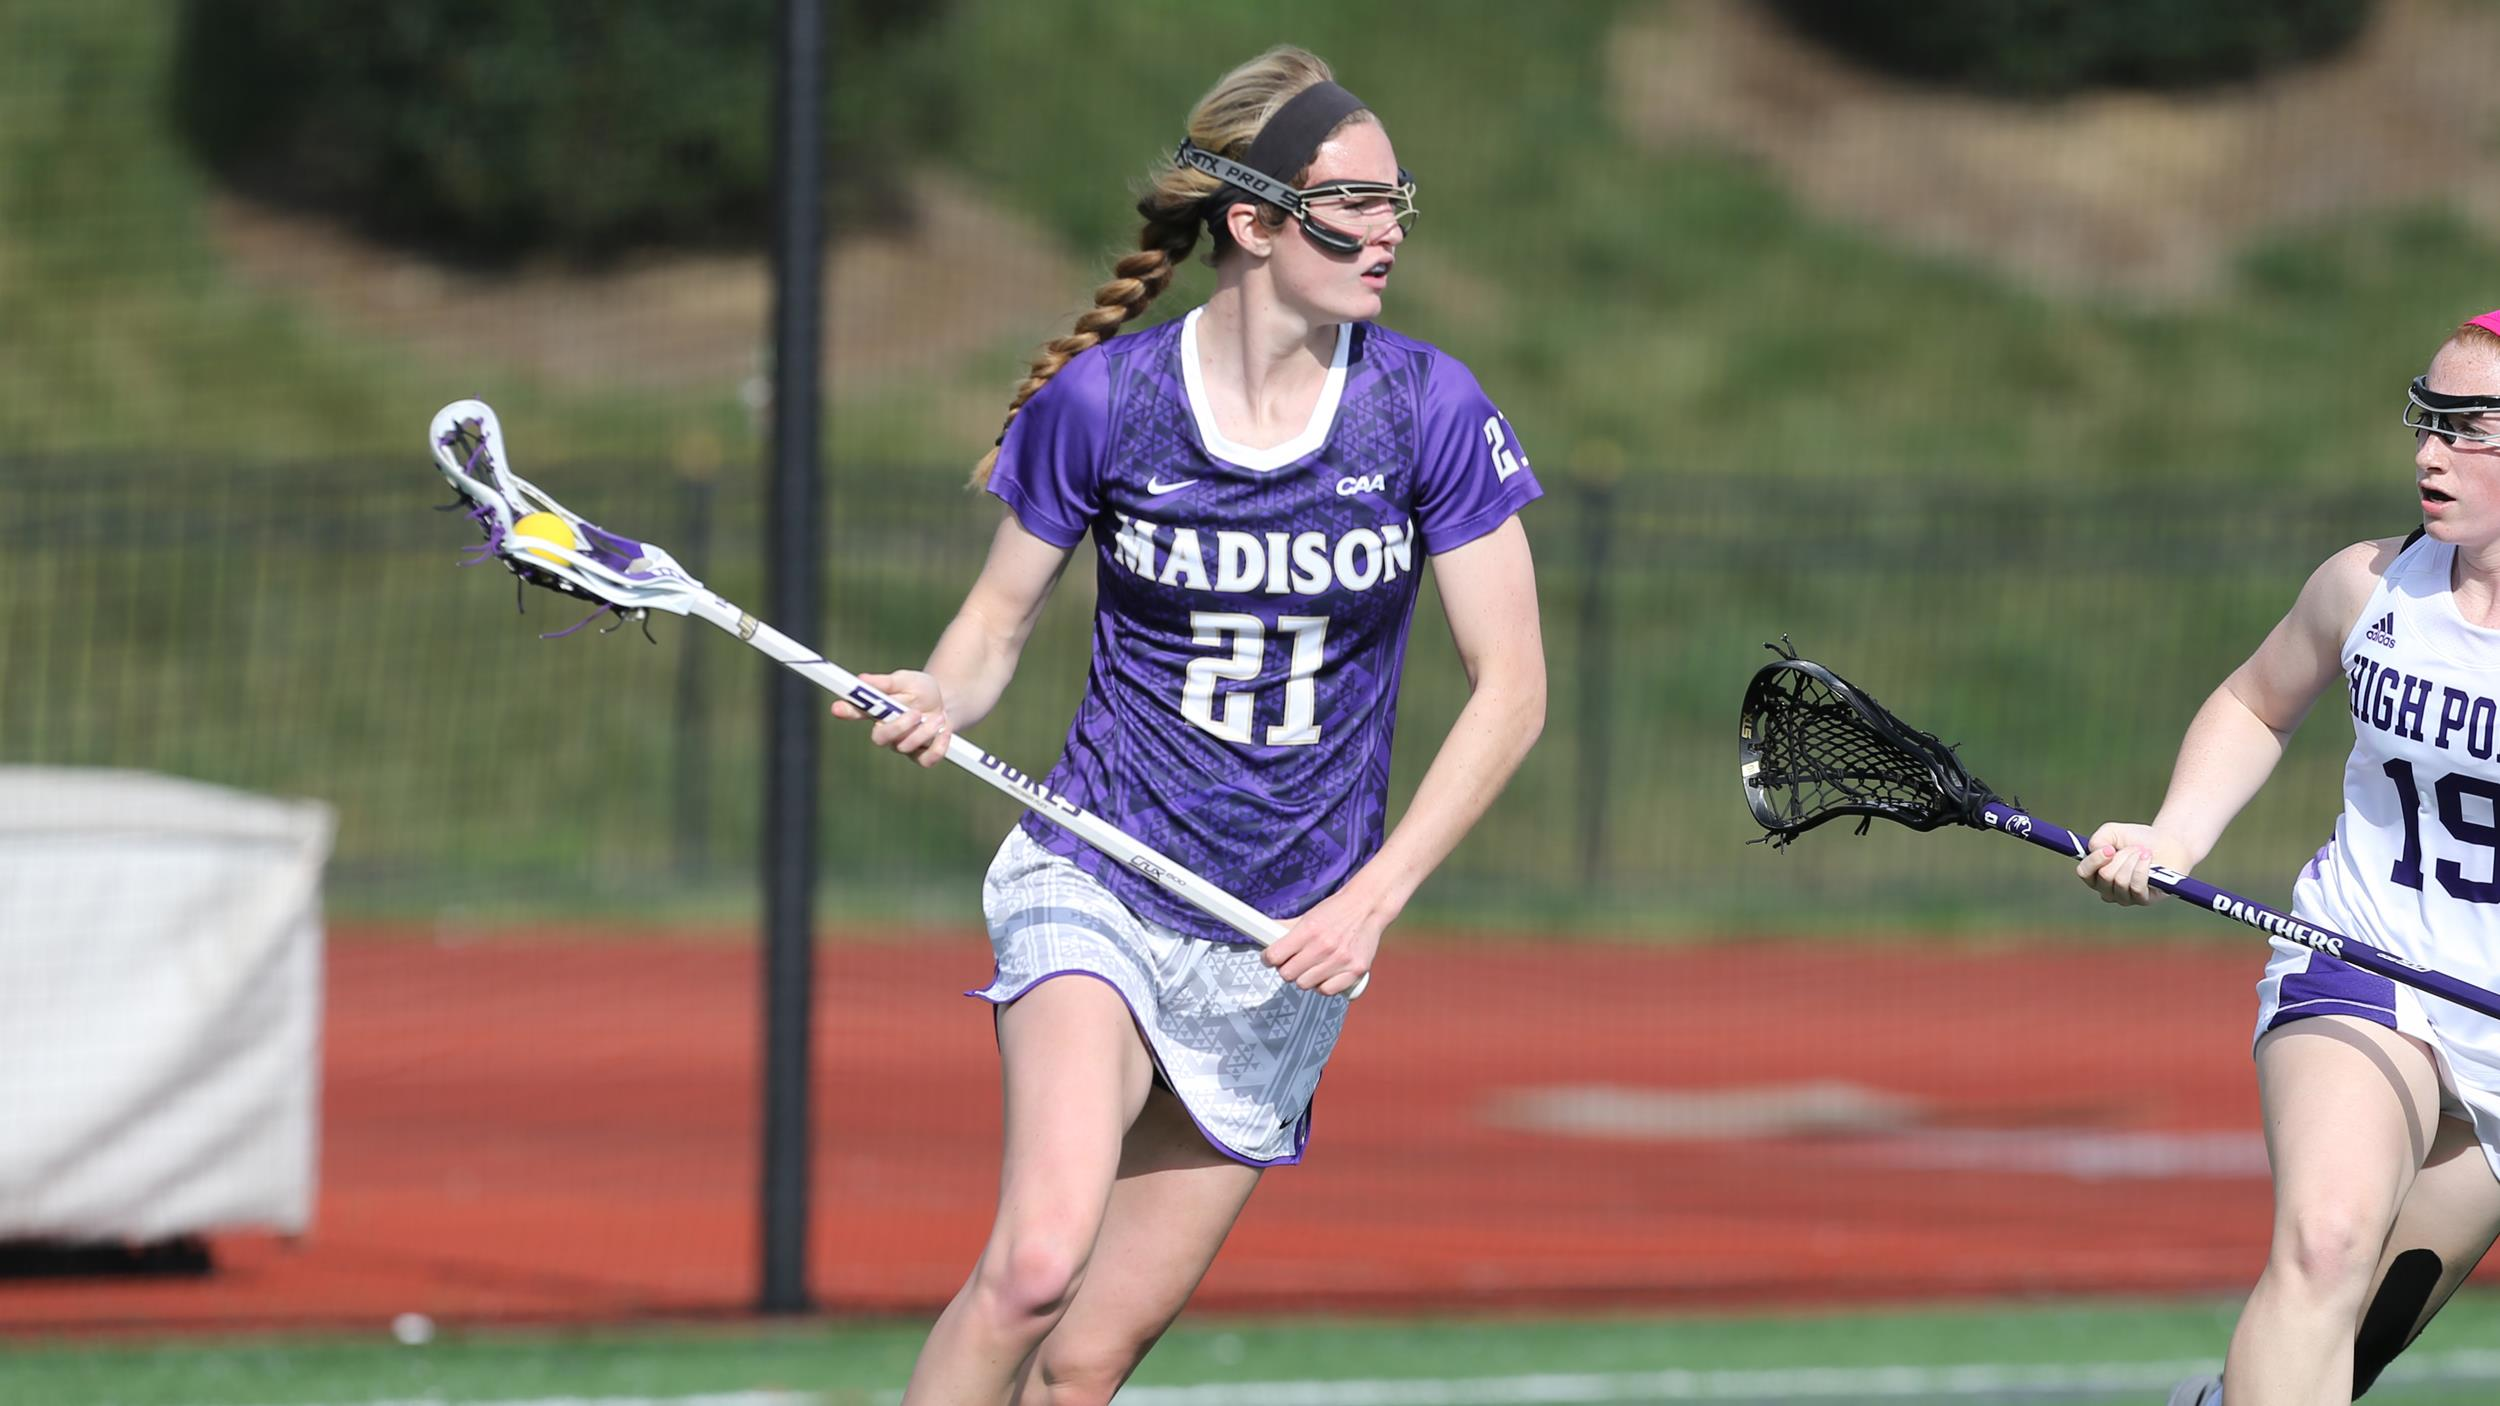 Women's Lacrosse: #8/6 Dukes Grind Out 13-11 Victory at High Point)